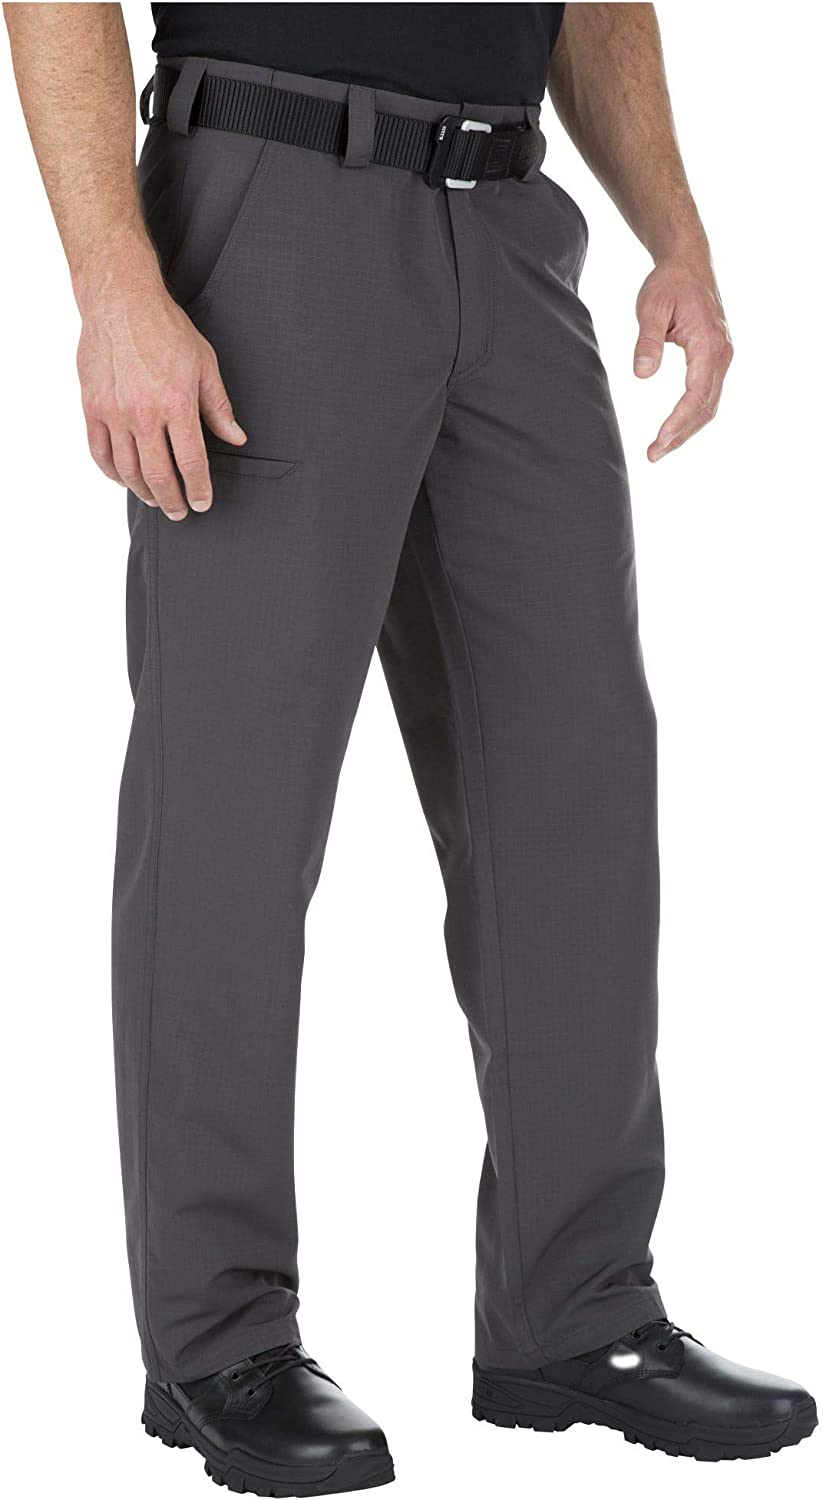 2021 spring and Inexpensive summer new 5.11 Tactical Men's Fast TAC #744 Style TDU Pant Cargo